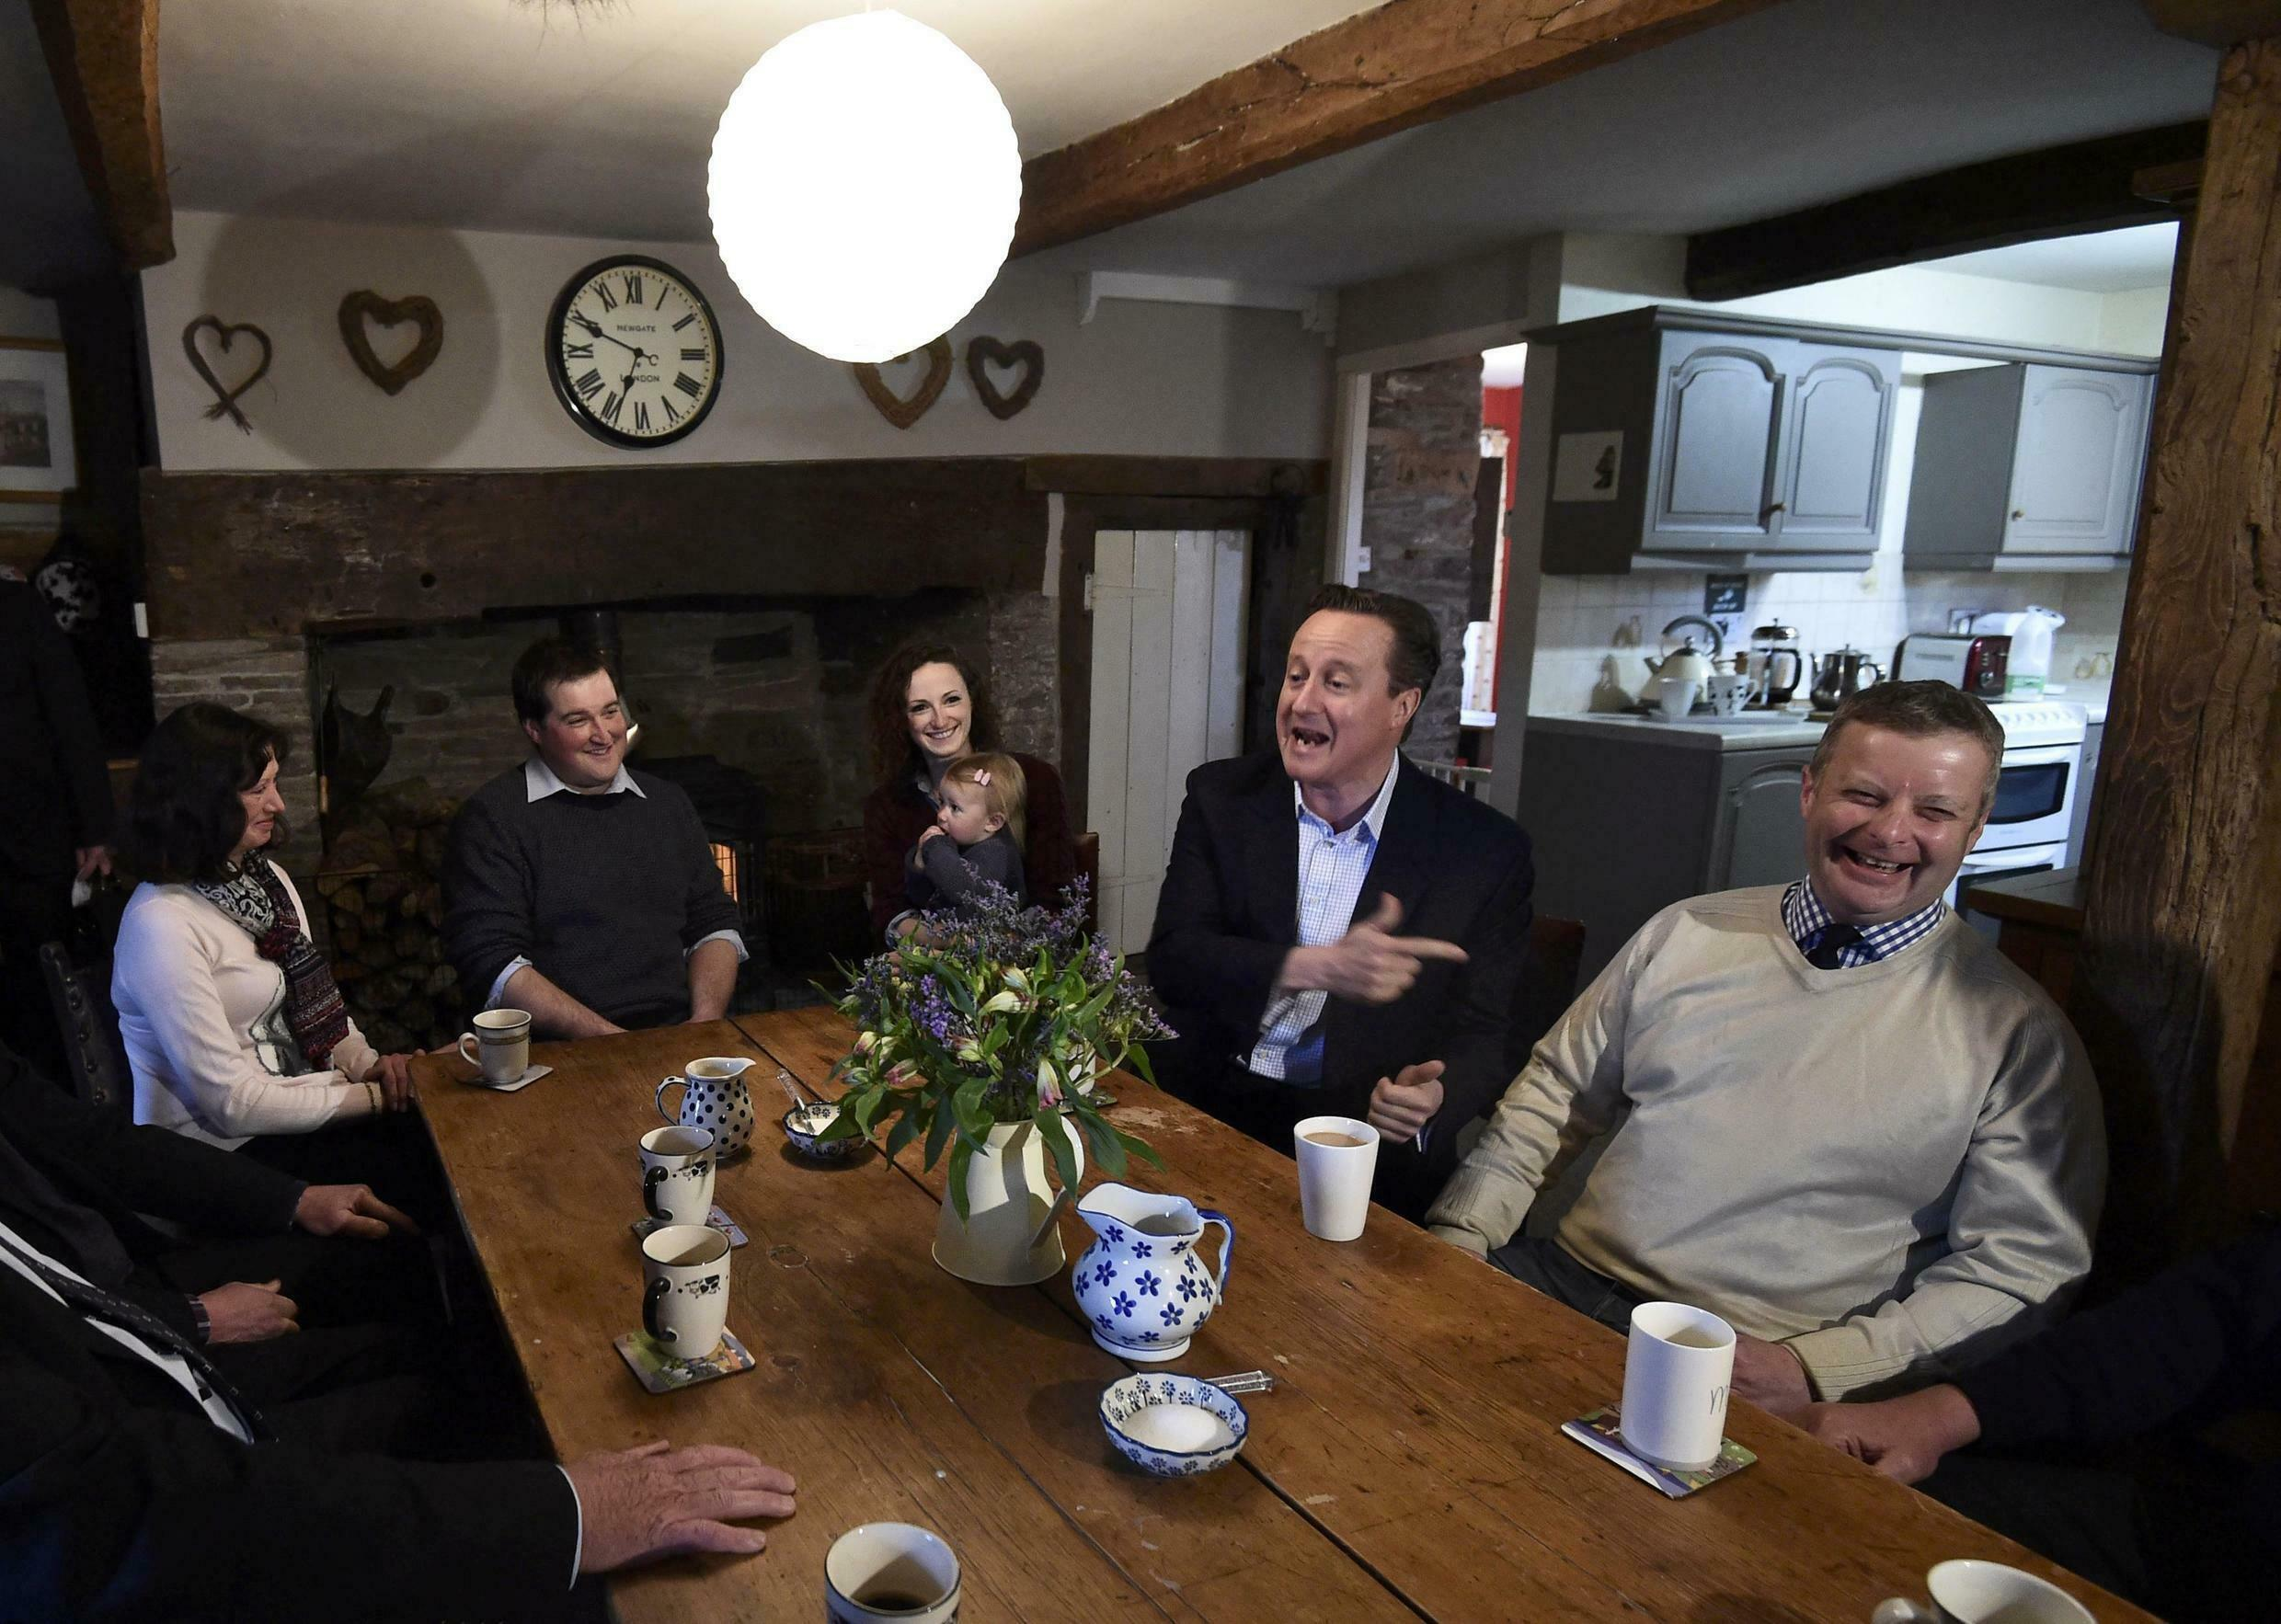 Britain's PM David Cameron speaks with local members of the farming community at Whole House Farm near Brecon in Wales.